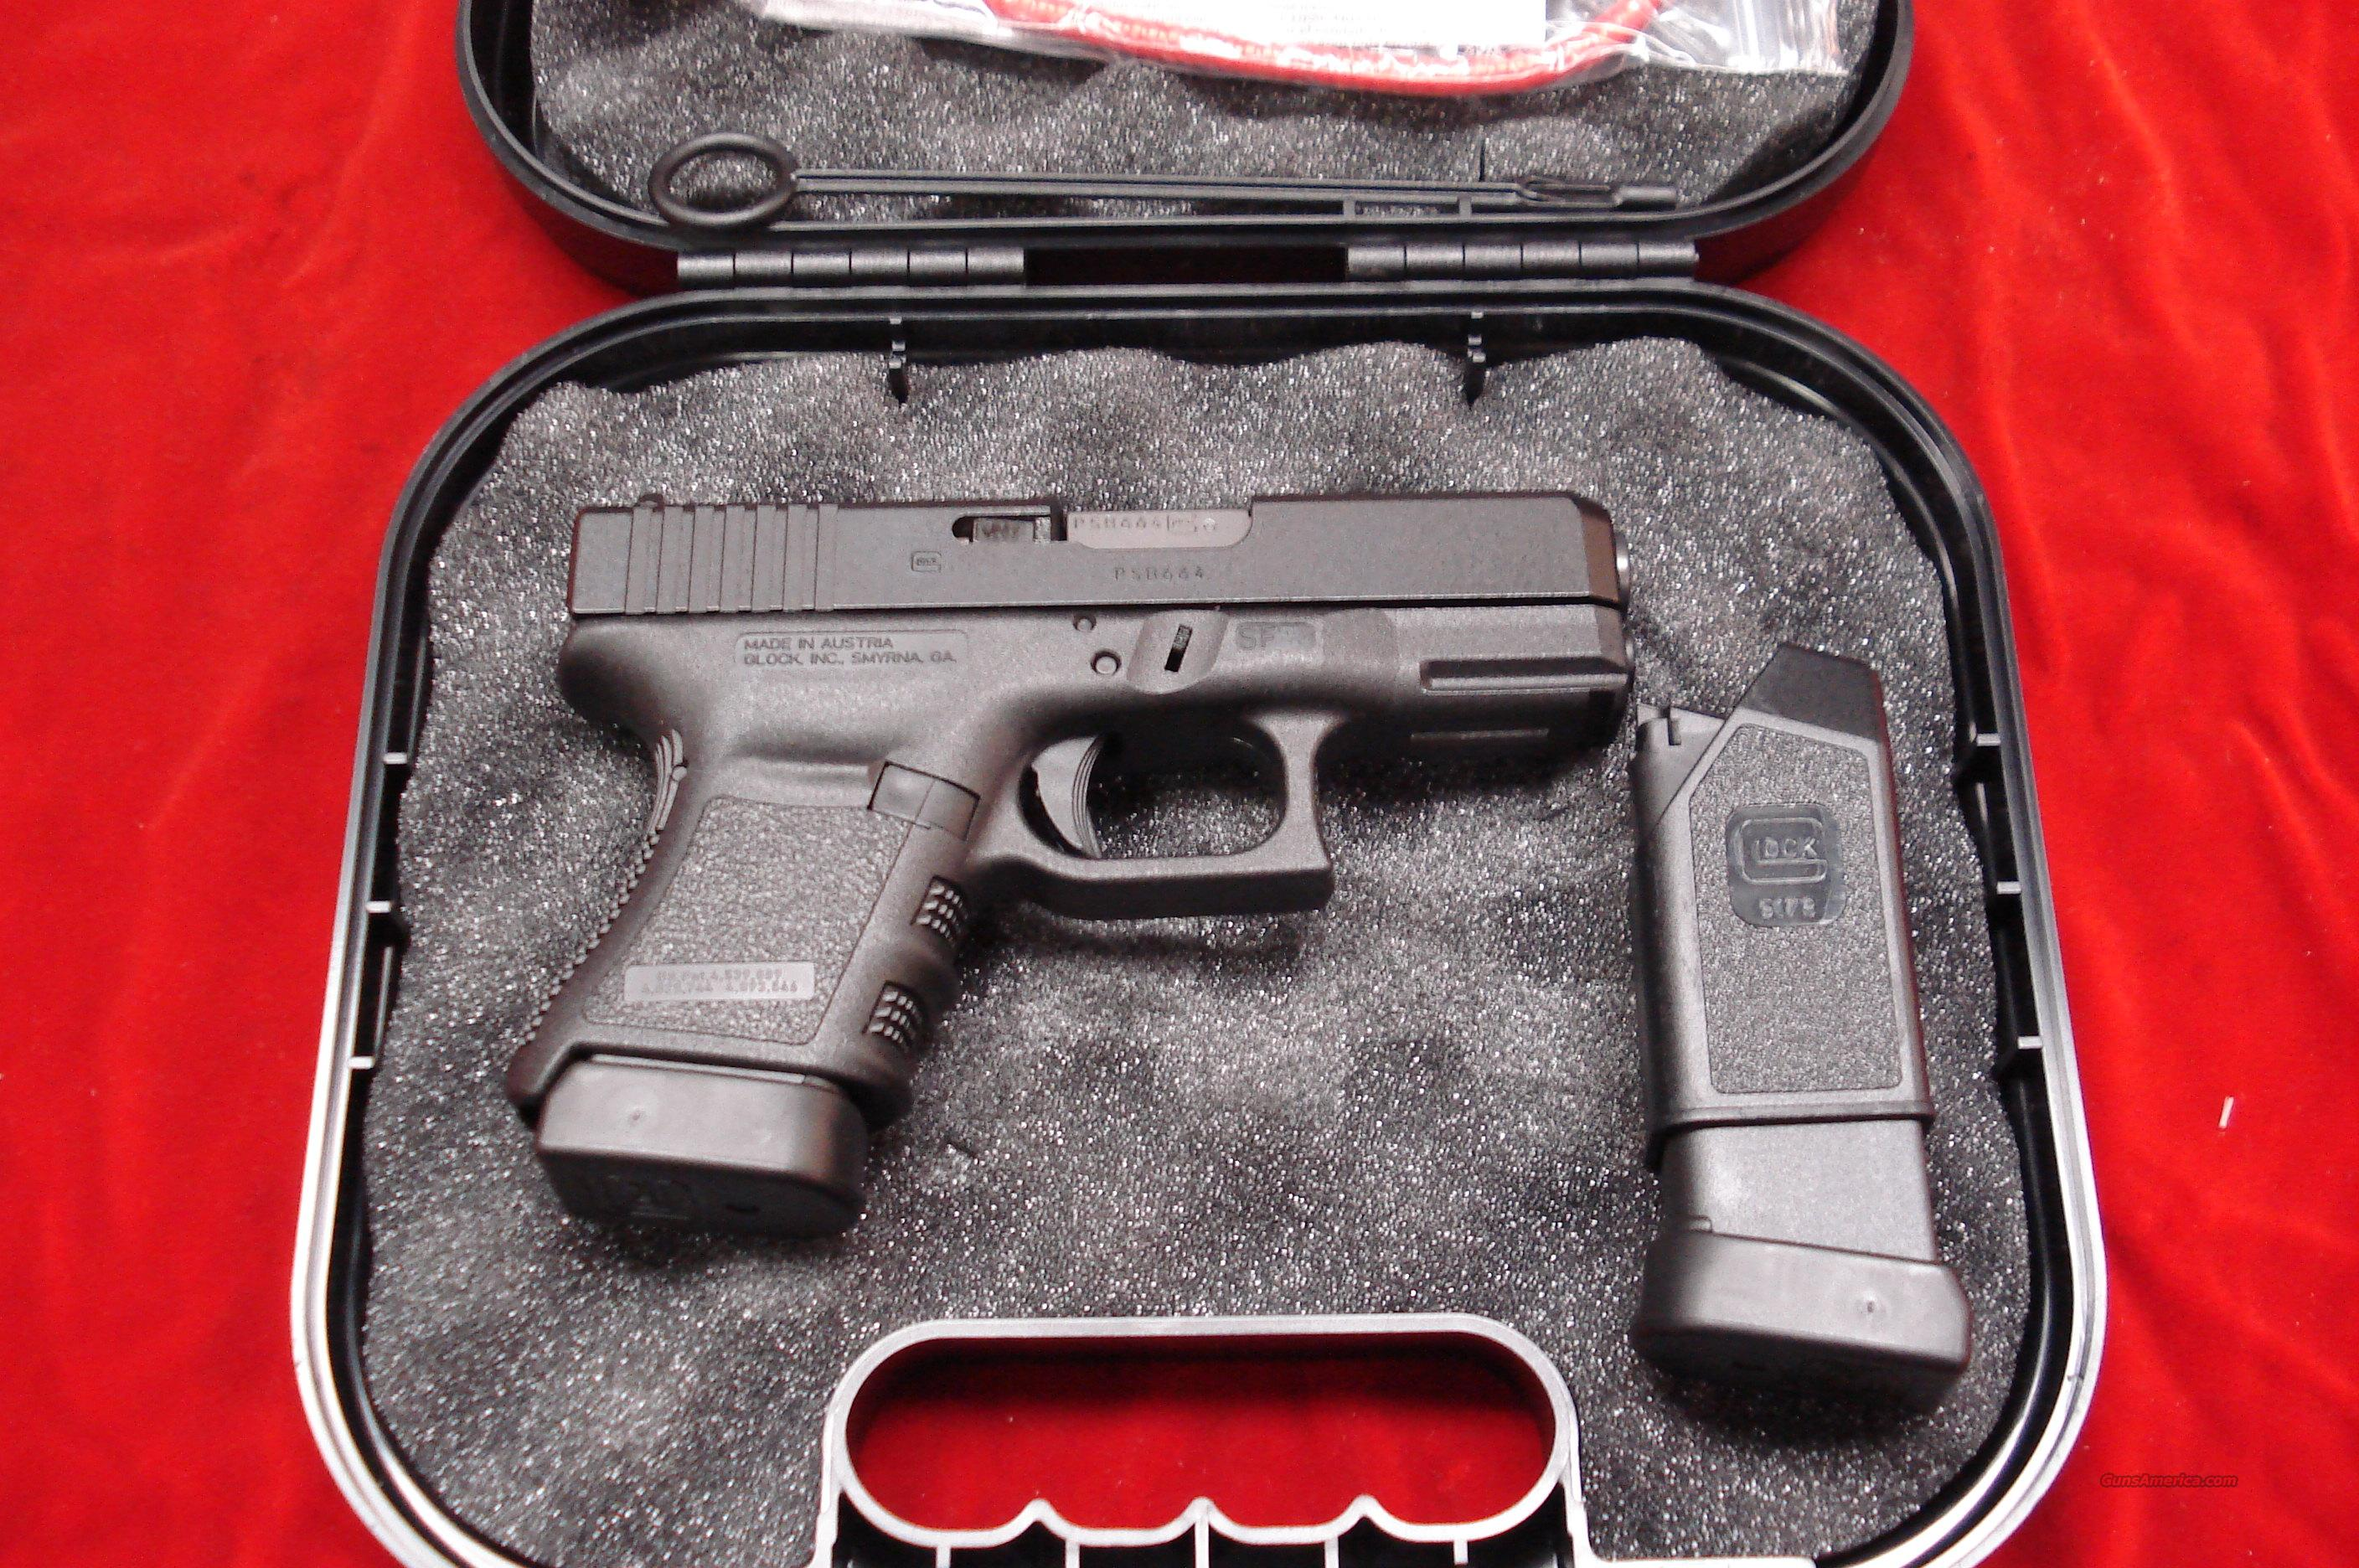 GLOCK MODEL 30SF (SLIM FRAME) 45ACP NEW  Guns > Pistols > Glock Pistols > 29/30/36